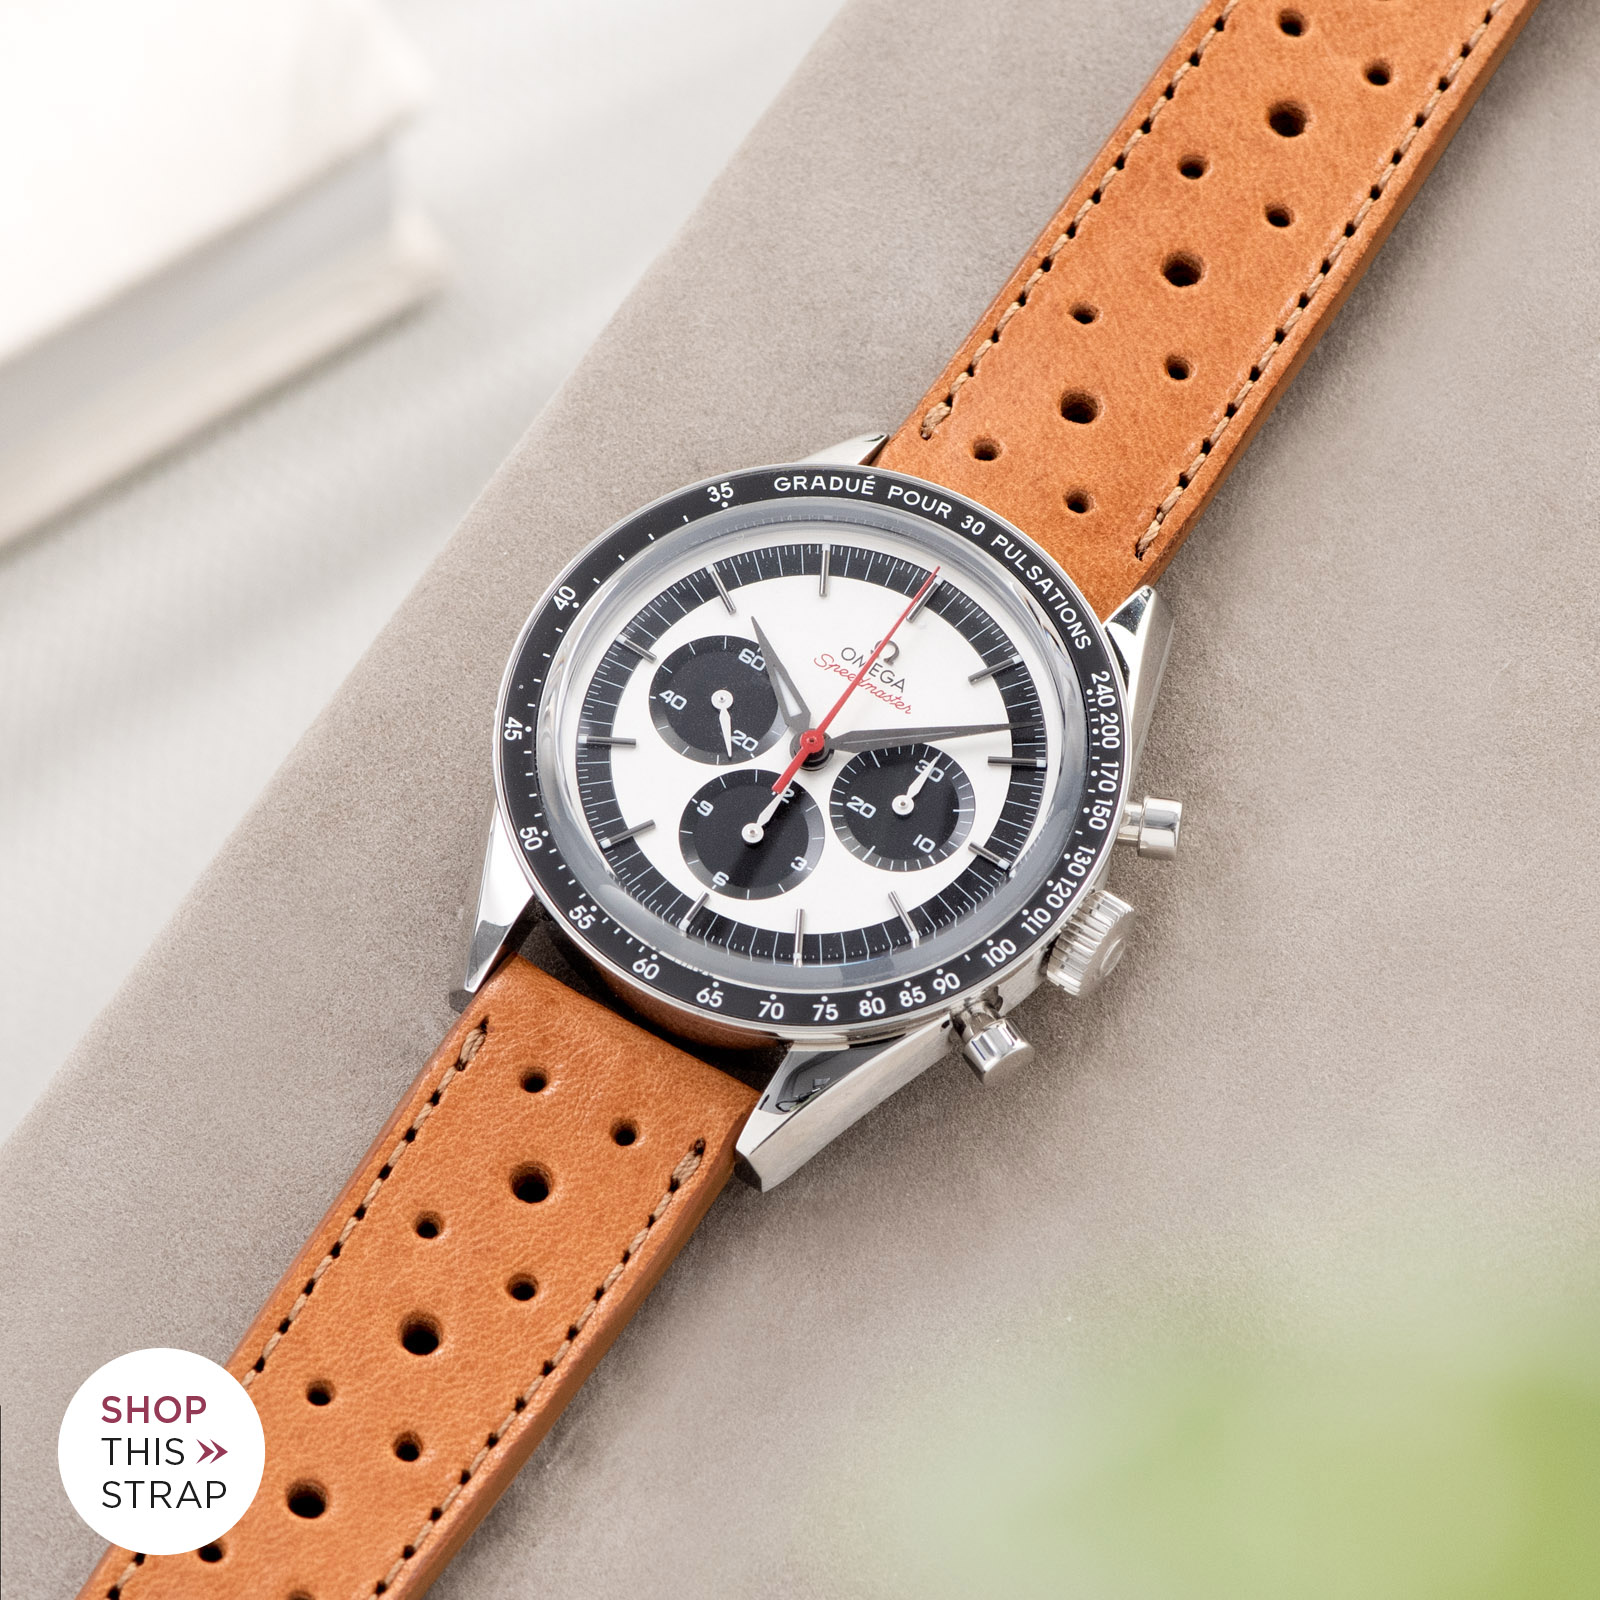 Bulang and Sons_Strap Guide_Omega Speedmaster 2998_Racing Caramel Brown Leather Watch Strap